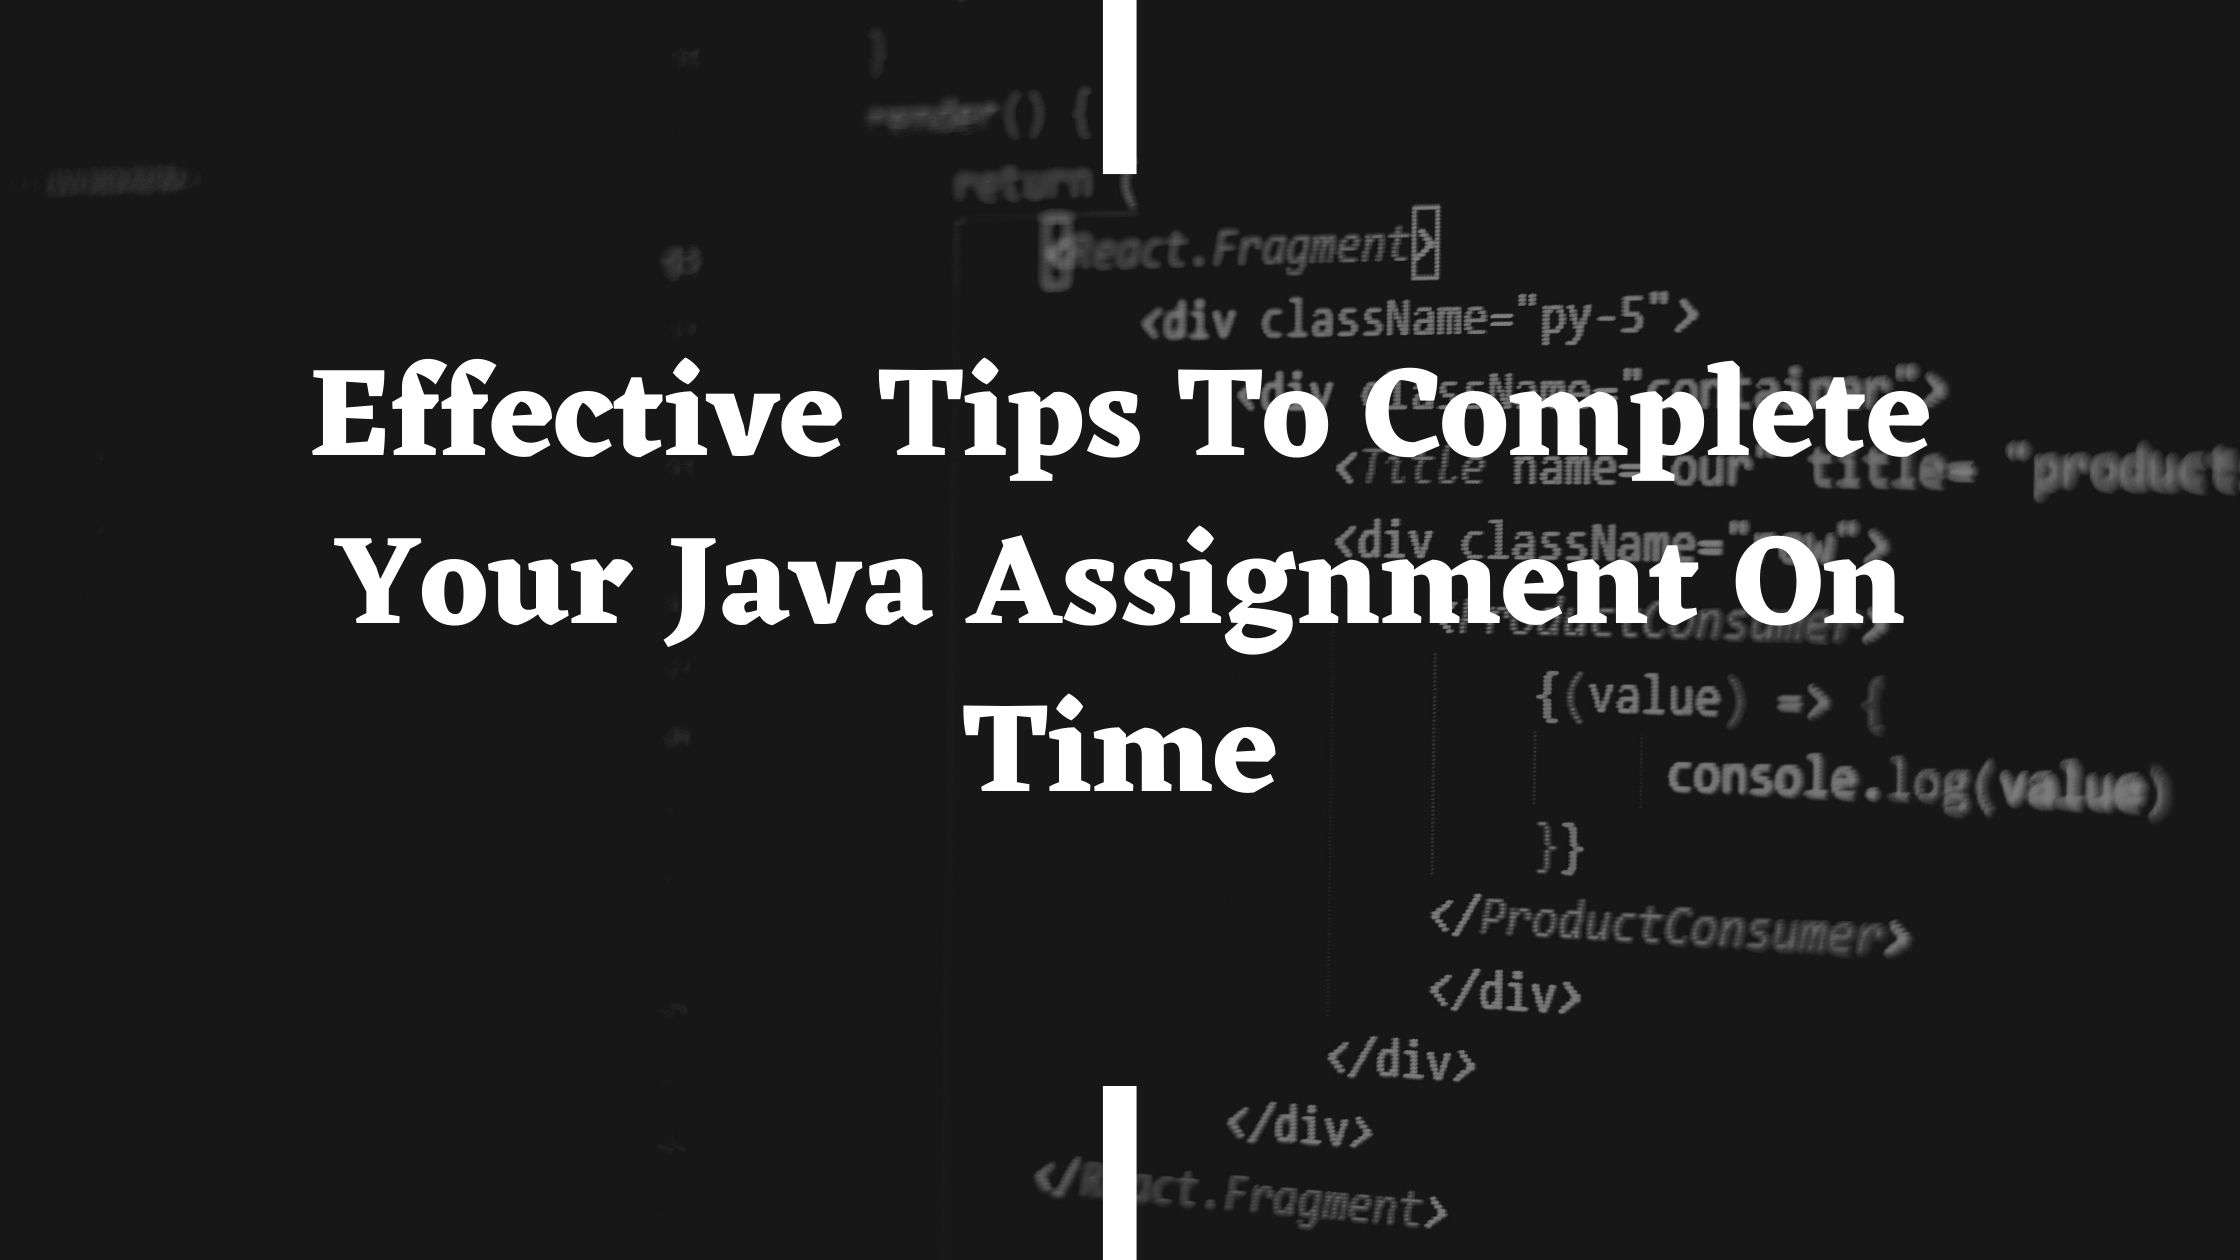 Effective Tips To Complete Your Java Assignment On Time